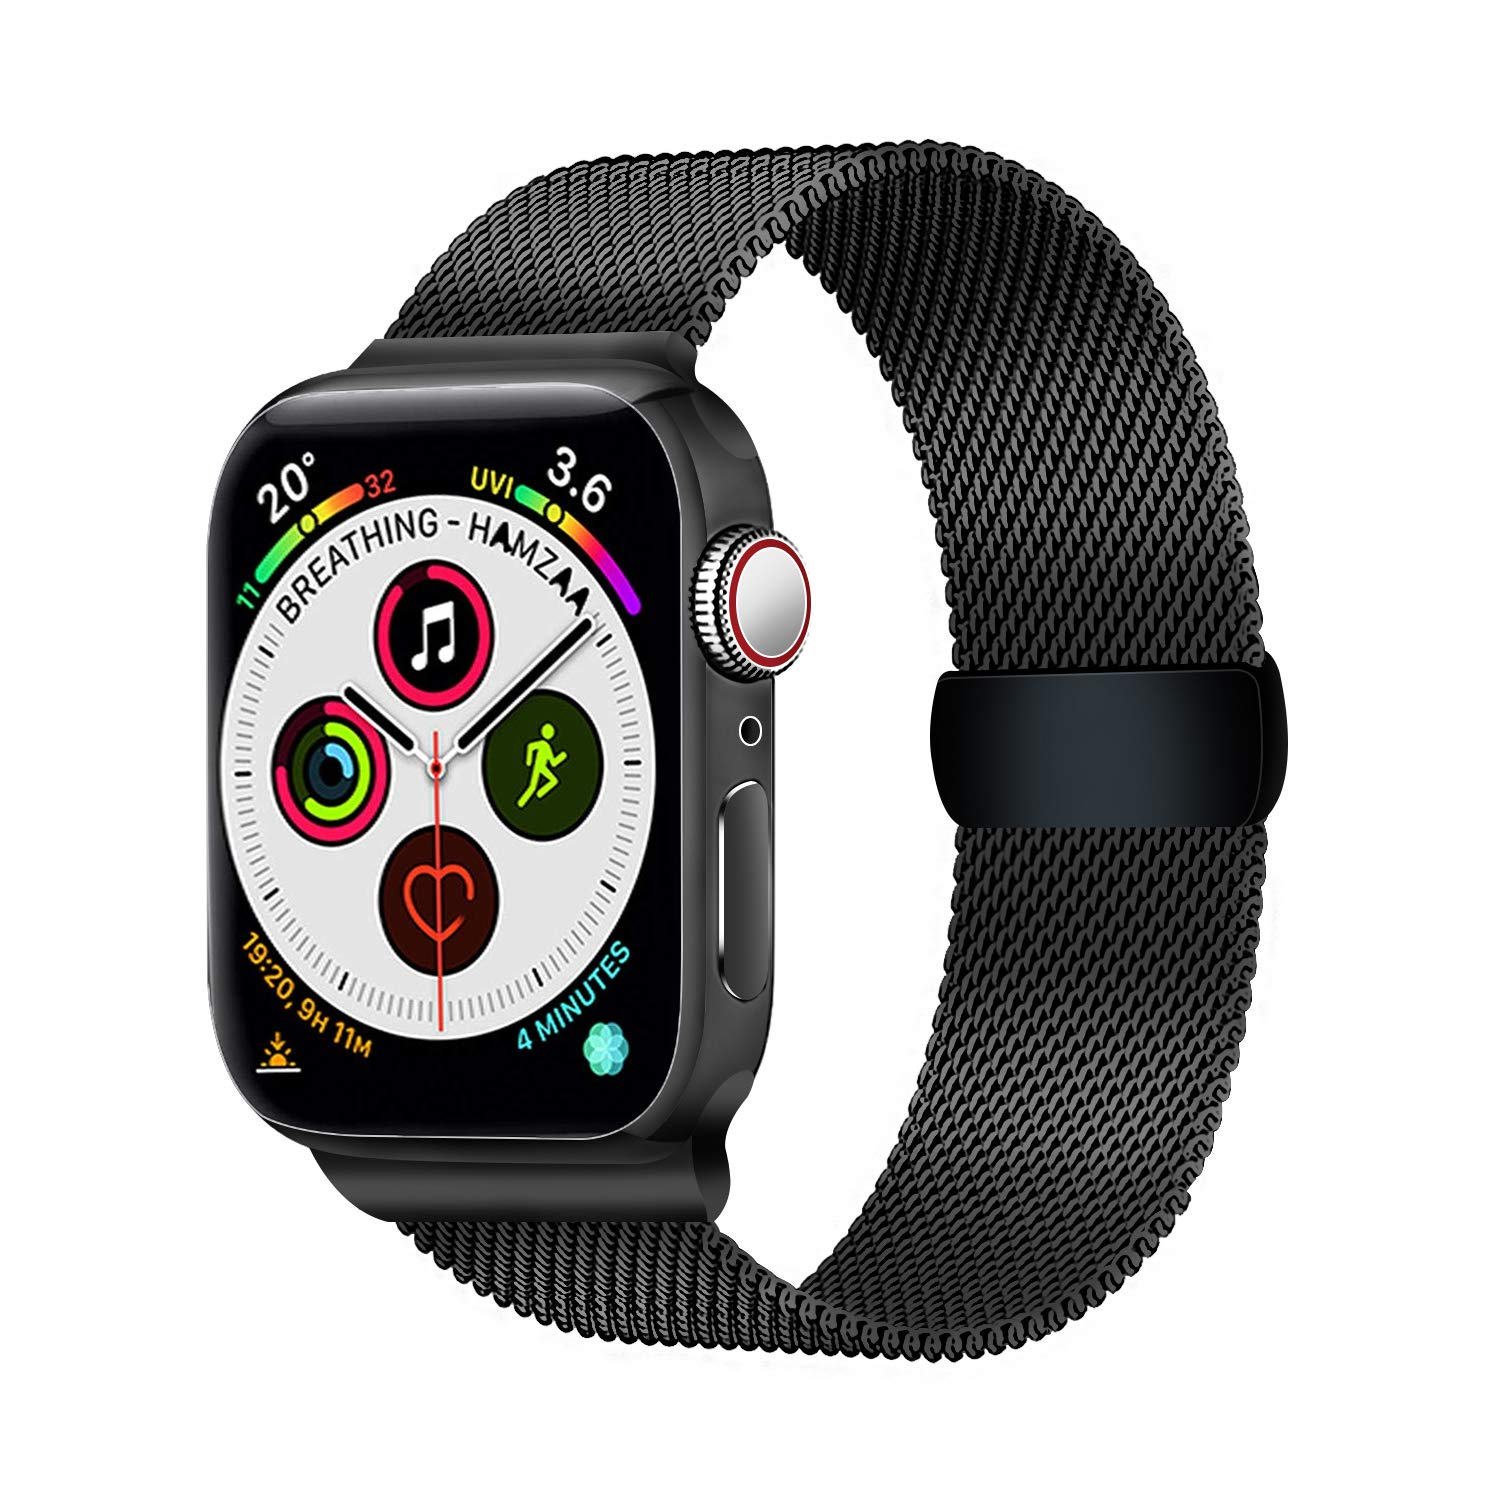 LUNANI Compatible for Apple Watch Band 42mm 44mm, Stainless Steel Mesh Sport Wristband Loop with Adjustable Magnet Clasp for iWatch Series 1 2 3 4, Black by LUNANI